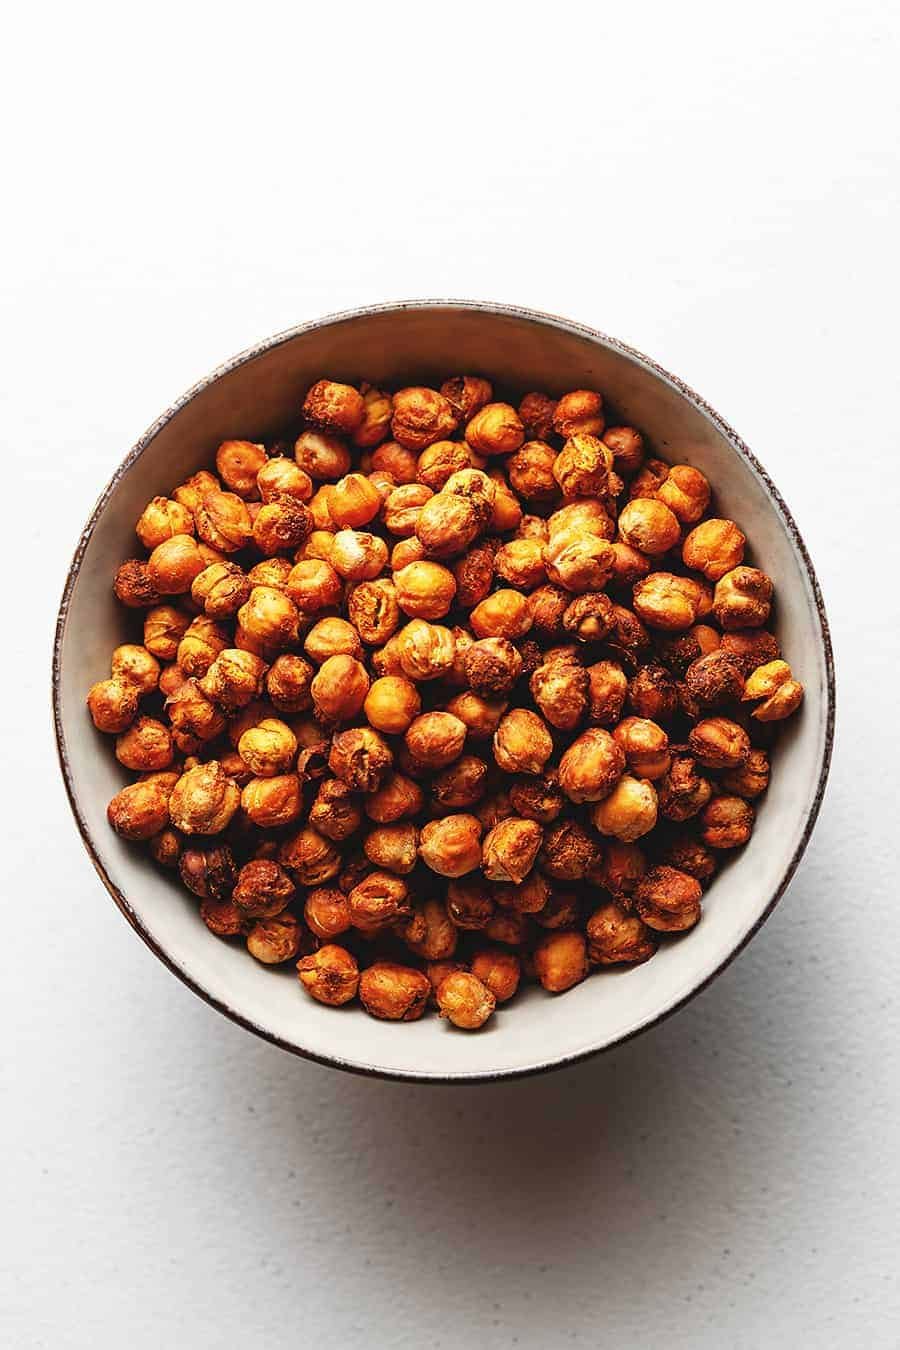 Chili-Lime Spiced Air-Fry Chickpeas